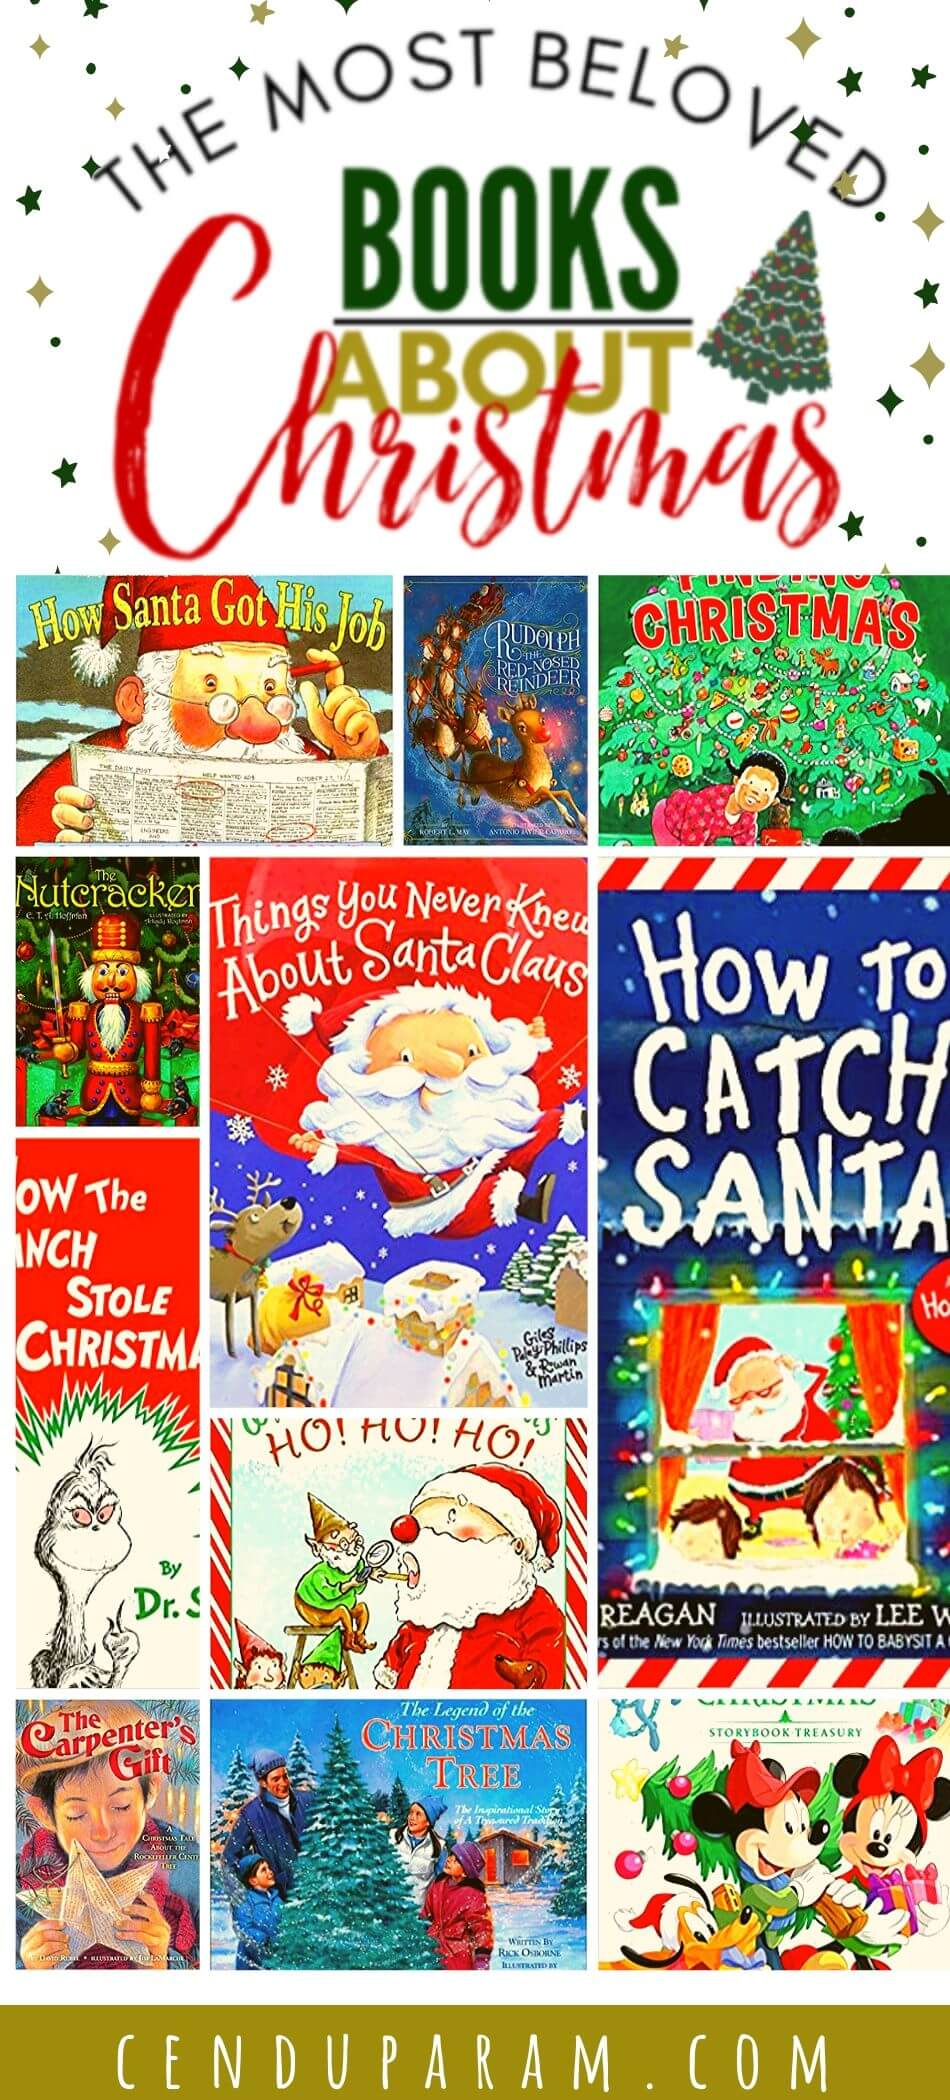 the best story books about Christmas for kids